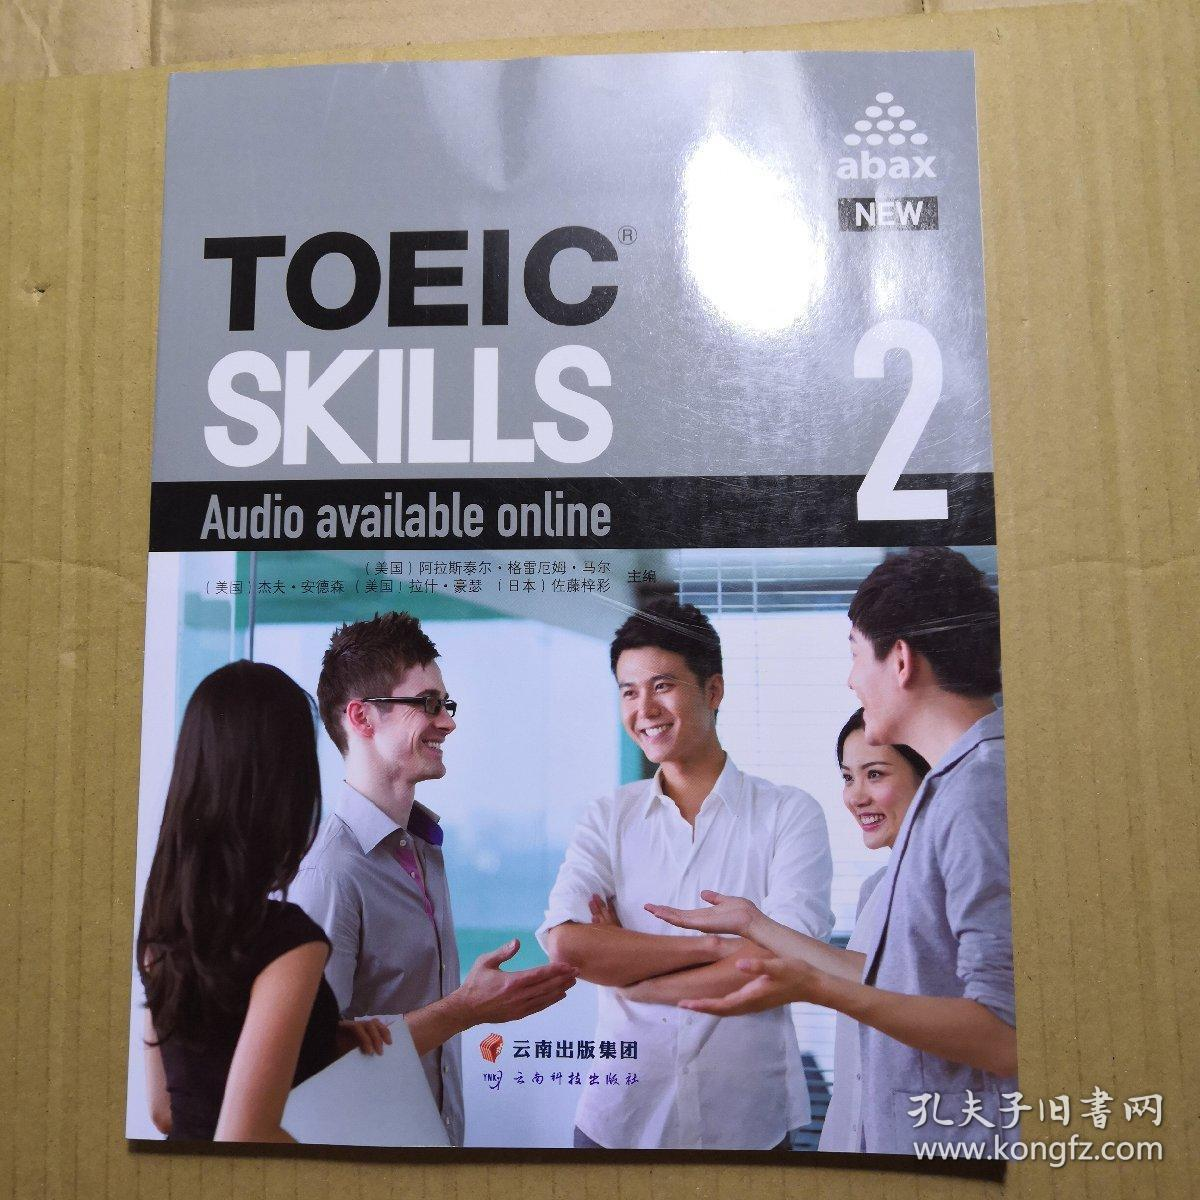 Tocic skills audio available online 2